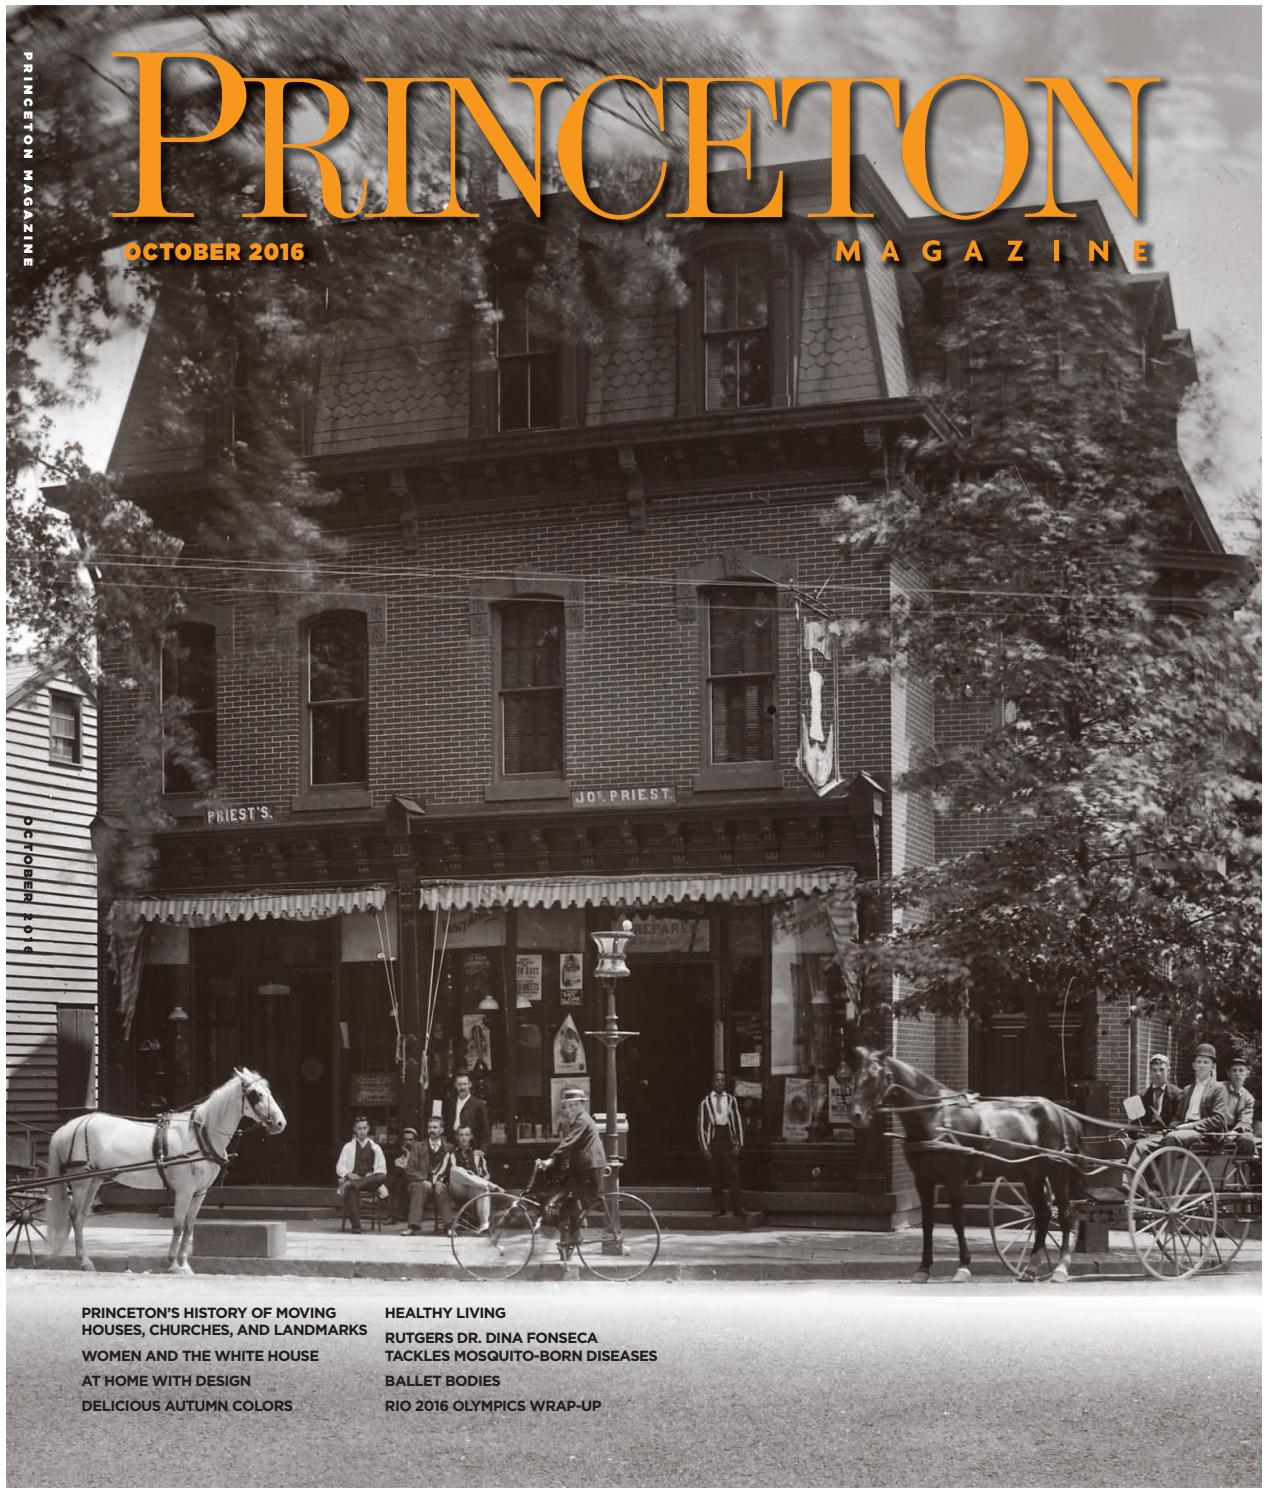 Princeton Magazine, October 2016 by Witherspoon Media Group